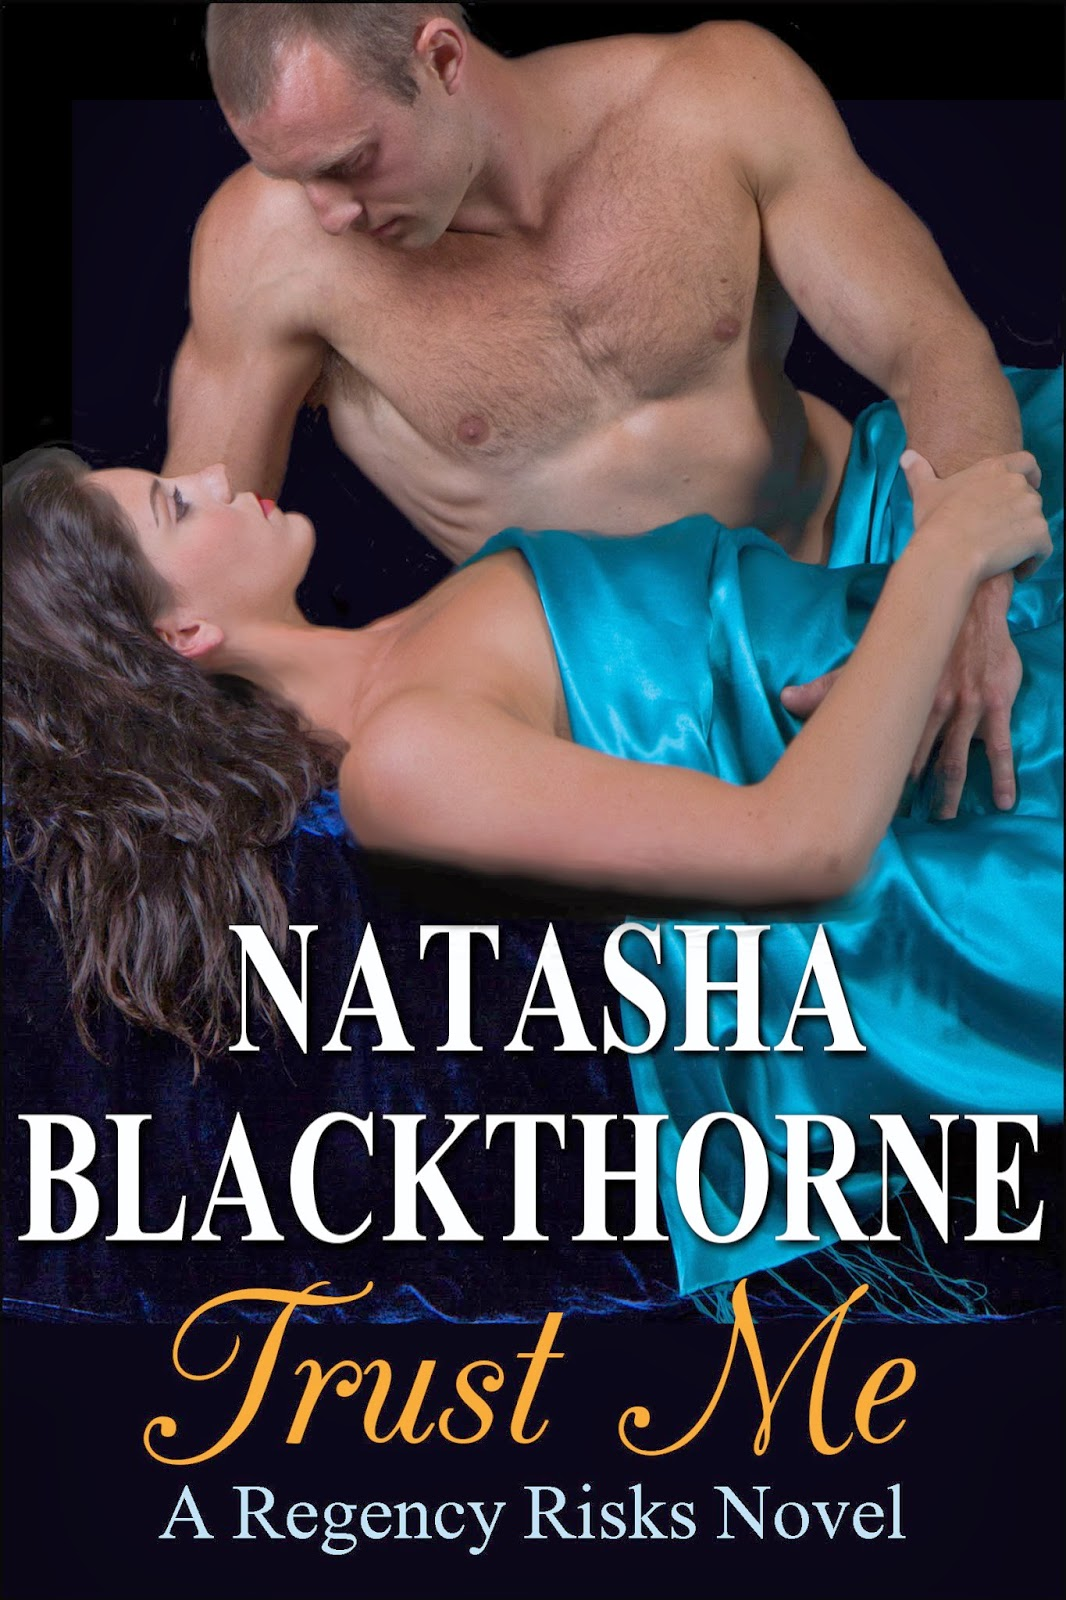 http://www.amazon.com/Trust-Regency-Risks-Natasha-Blackthorne-ebook/dp/B00J4Z61T6%3FSubscriptionId%3DAKIAJBDF5XQBATGDX4VQ%26tag%3Dspea06-20%26linkCode%3Dxm2%26camp%3D2025%26creative%3D165953%26creativeASIN%3DB00J4Z61T6